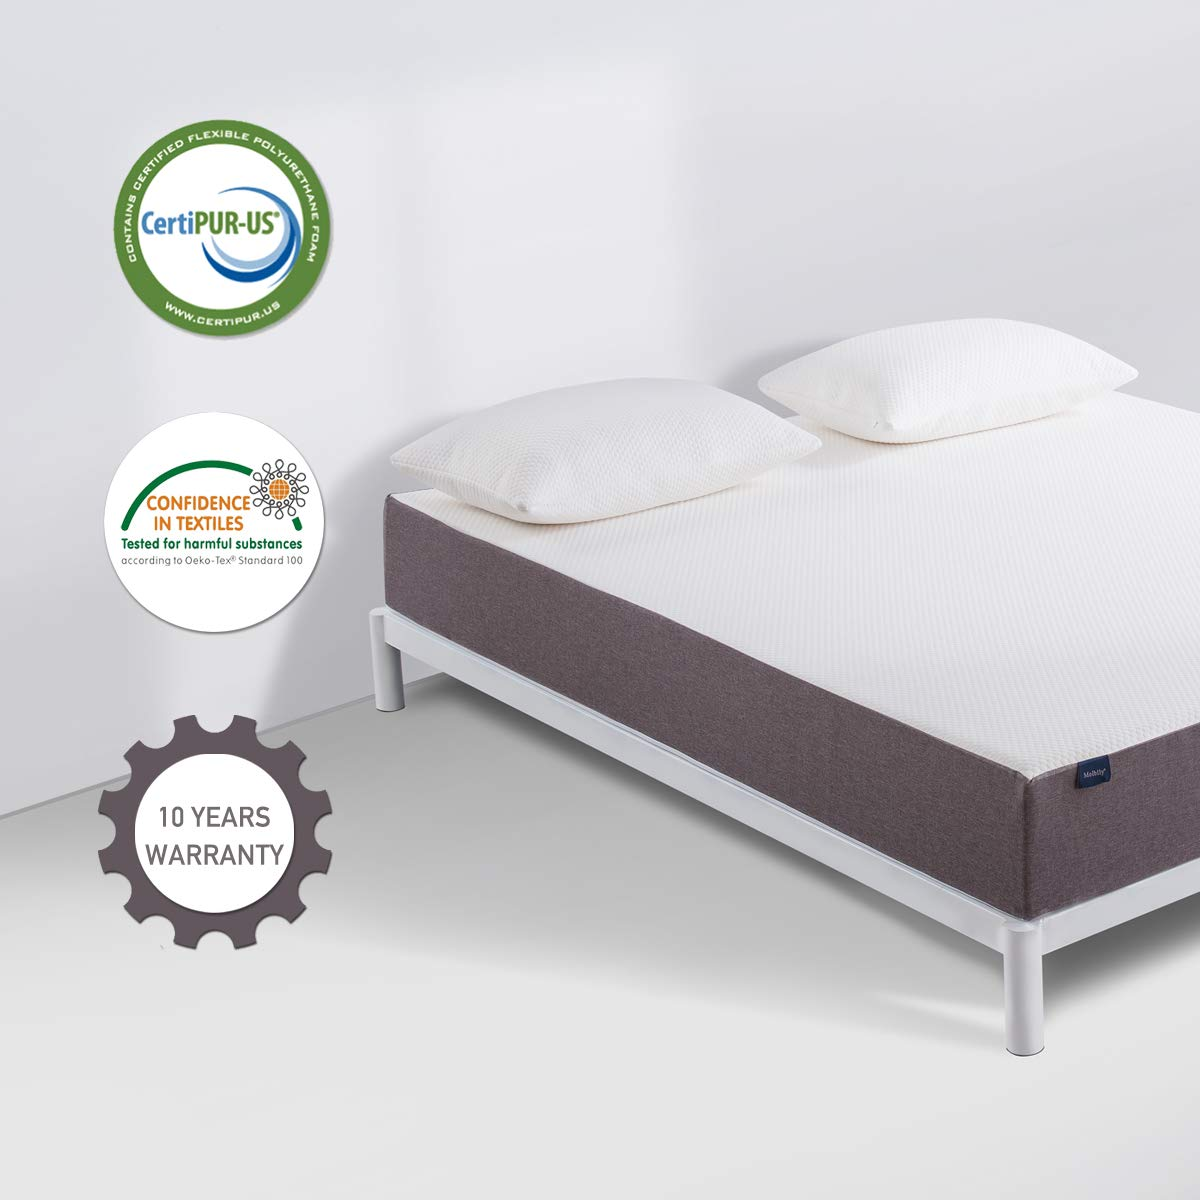 Amazon.com - Twin Mattress, Molblly 8 Inch Memory Foam Mattress in a Box, Breathable Bed Mattress with CertiPUR-US Certified Foam for Sleep Supportive ...